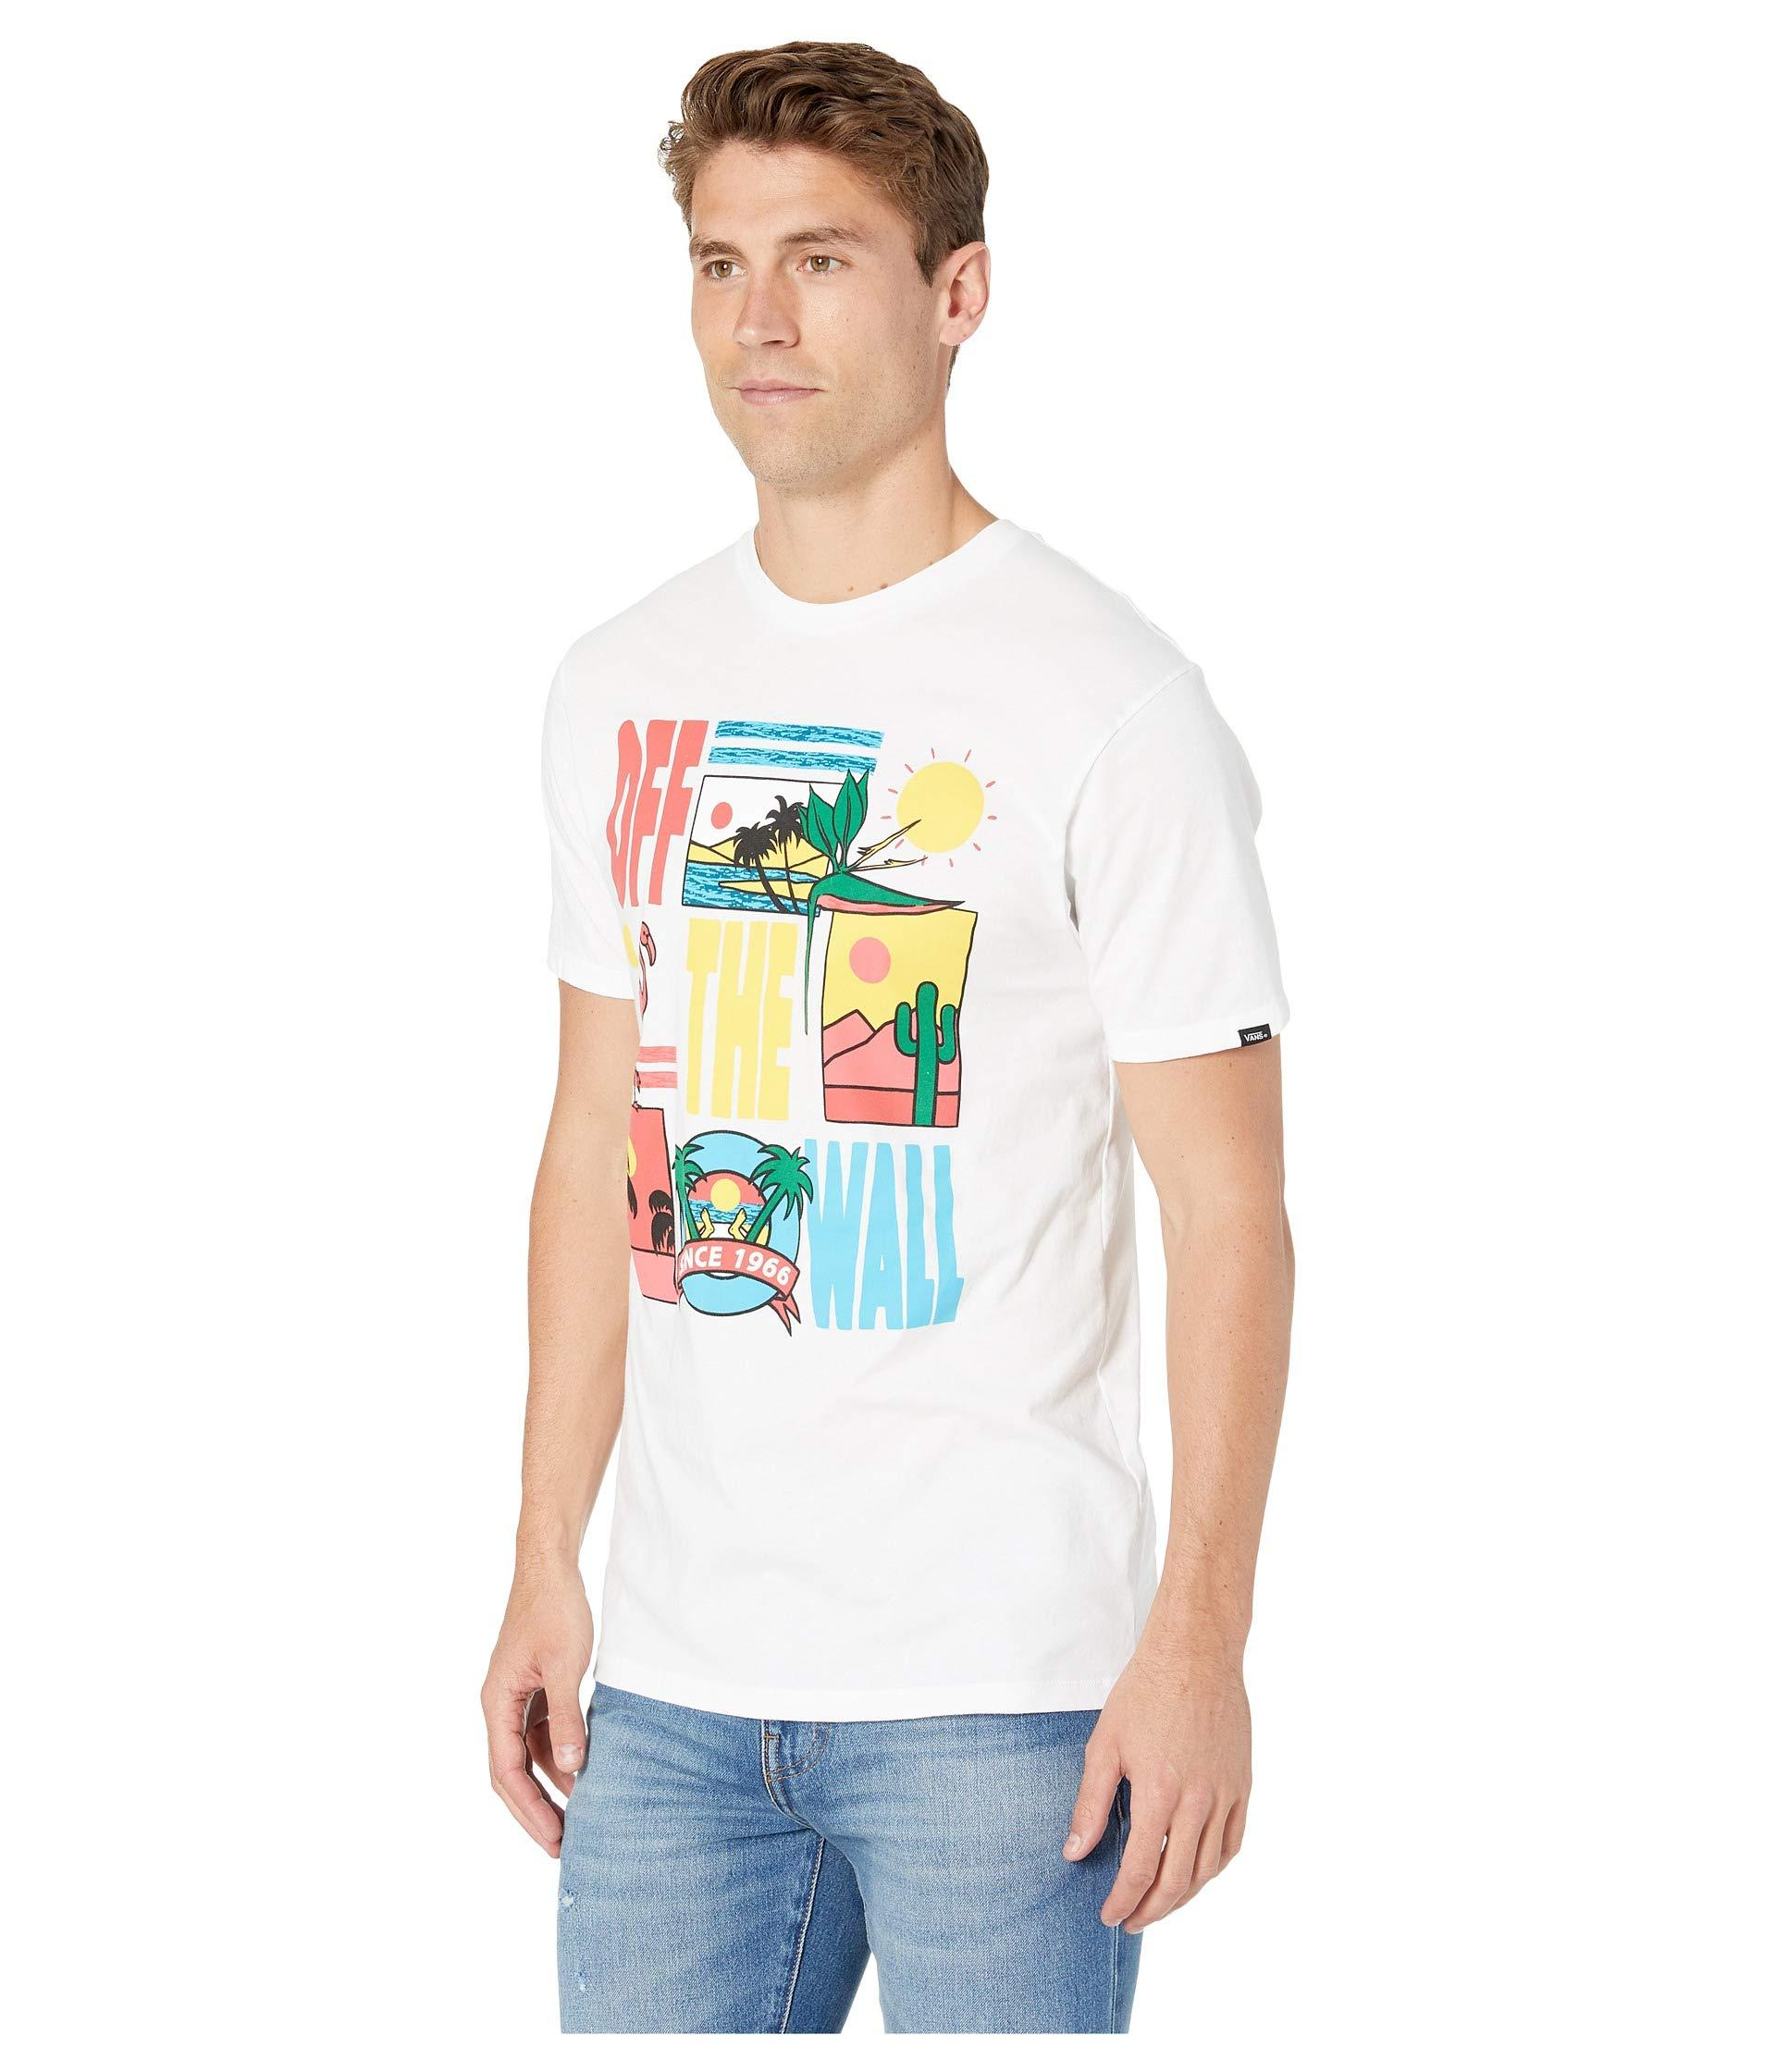 308220db8 Lyst - Vans Tropicool Short Sleeve T-shirt (white) Men's T Shirt in White  for Men